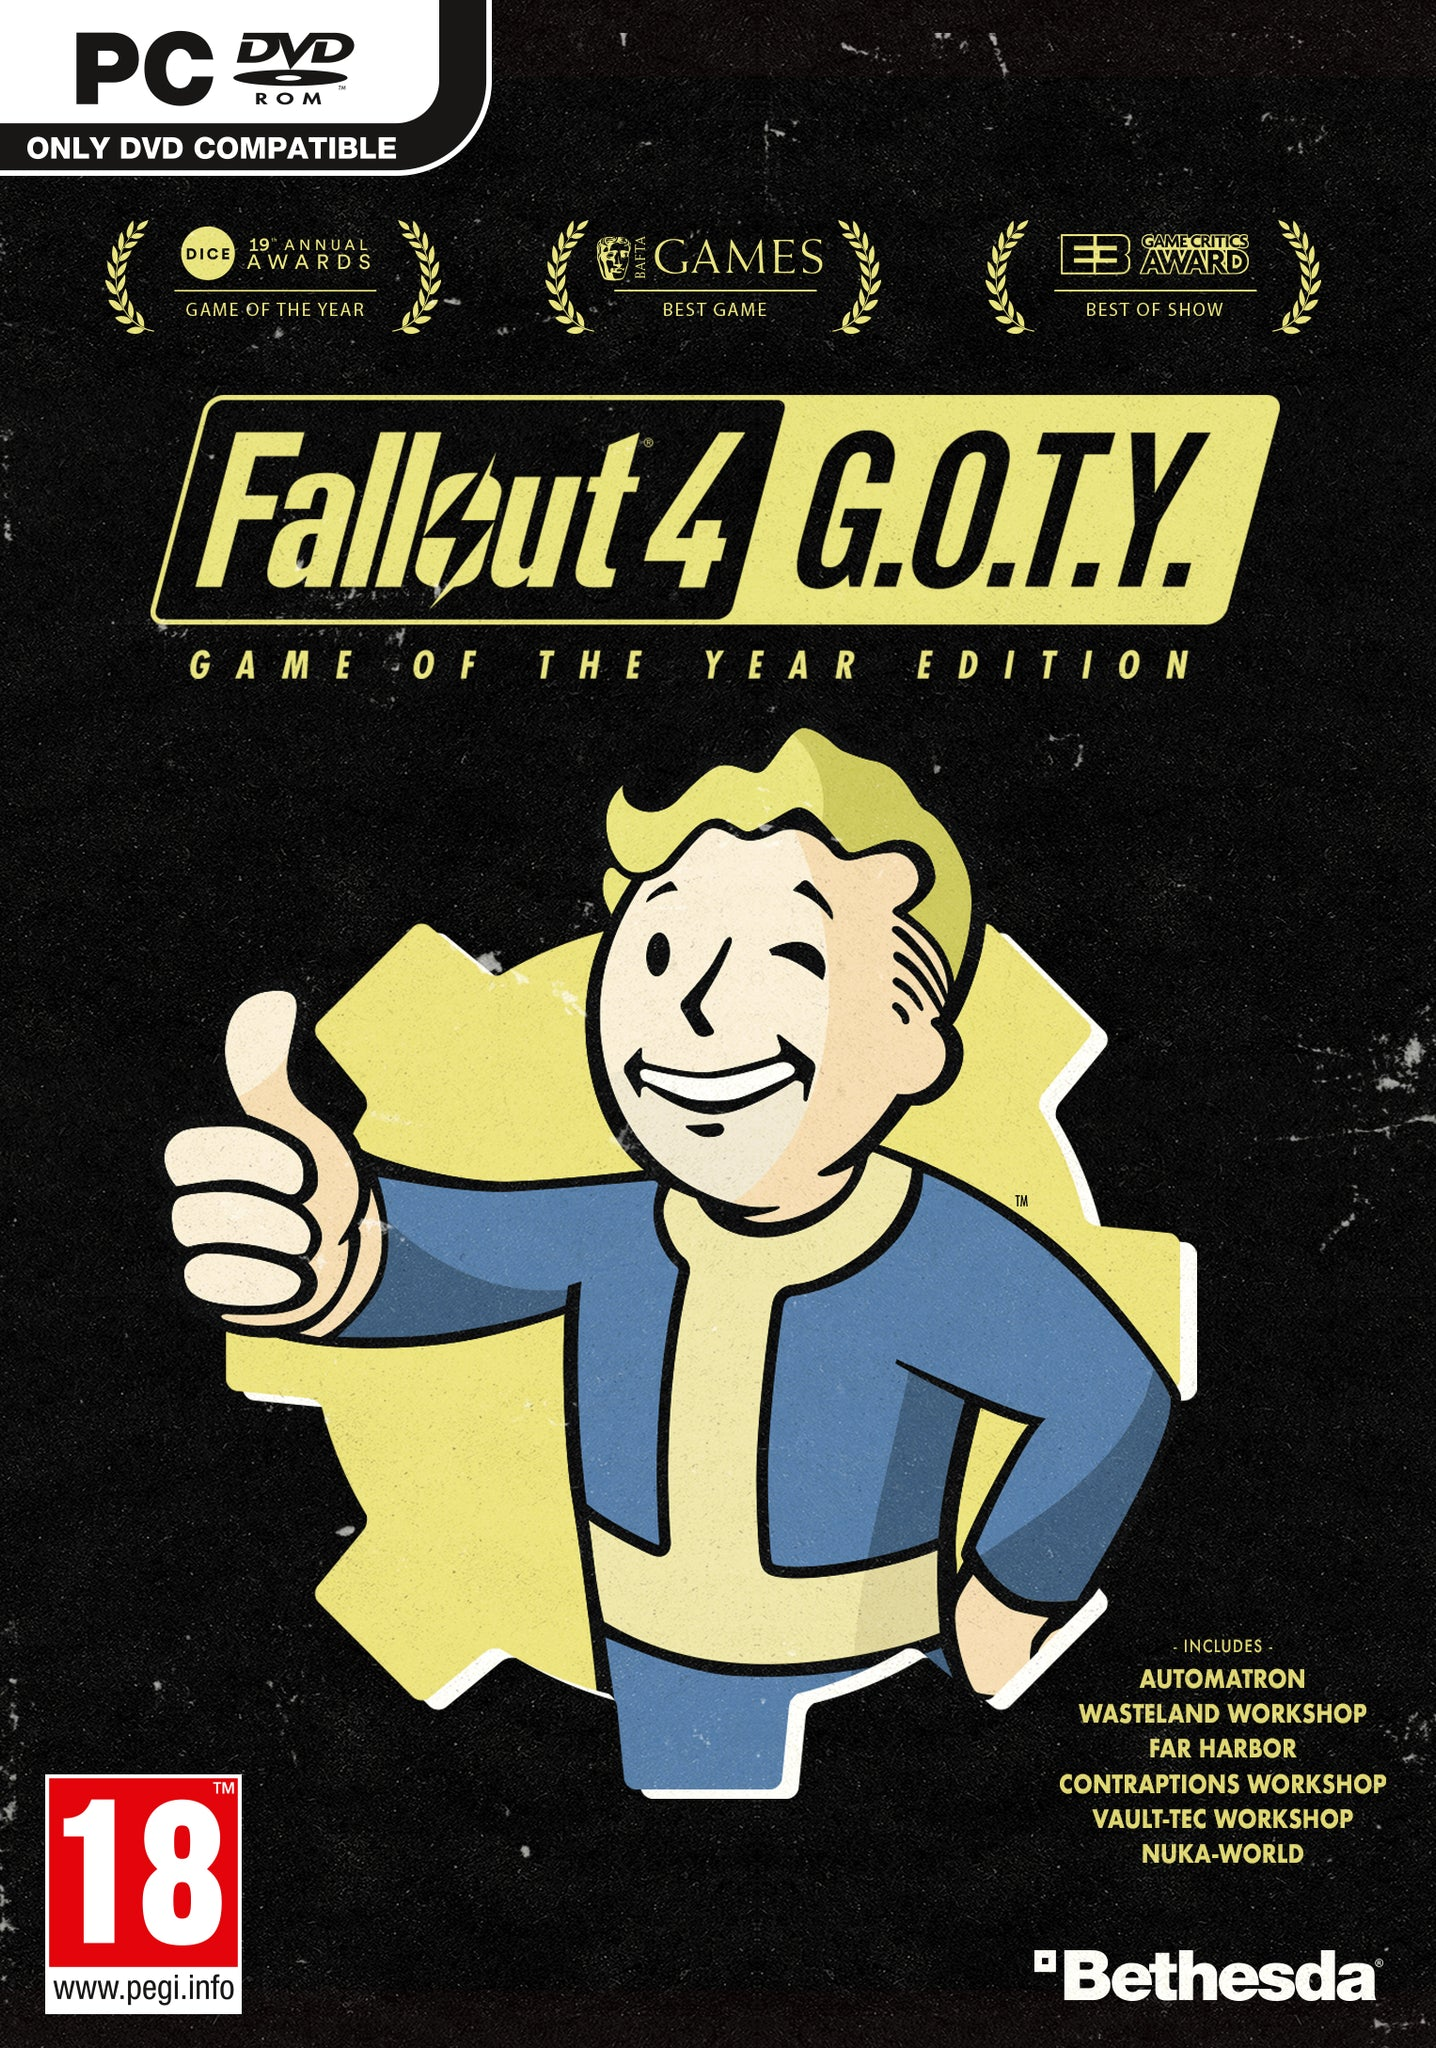 Fallout 4 Game of the Year Edition - PC - Video Games by Bethesda The Chelsea Gamer